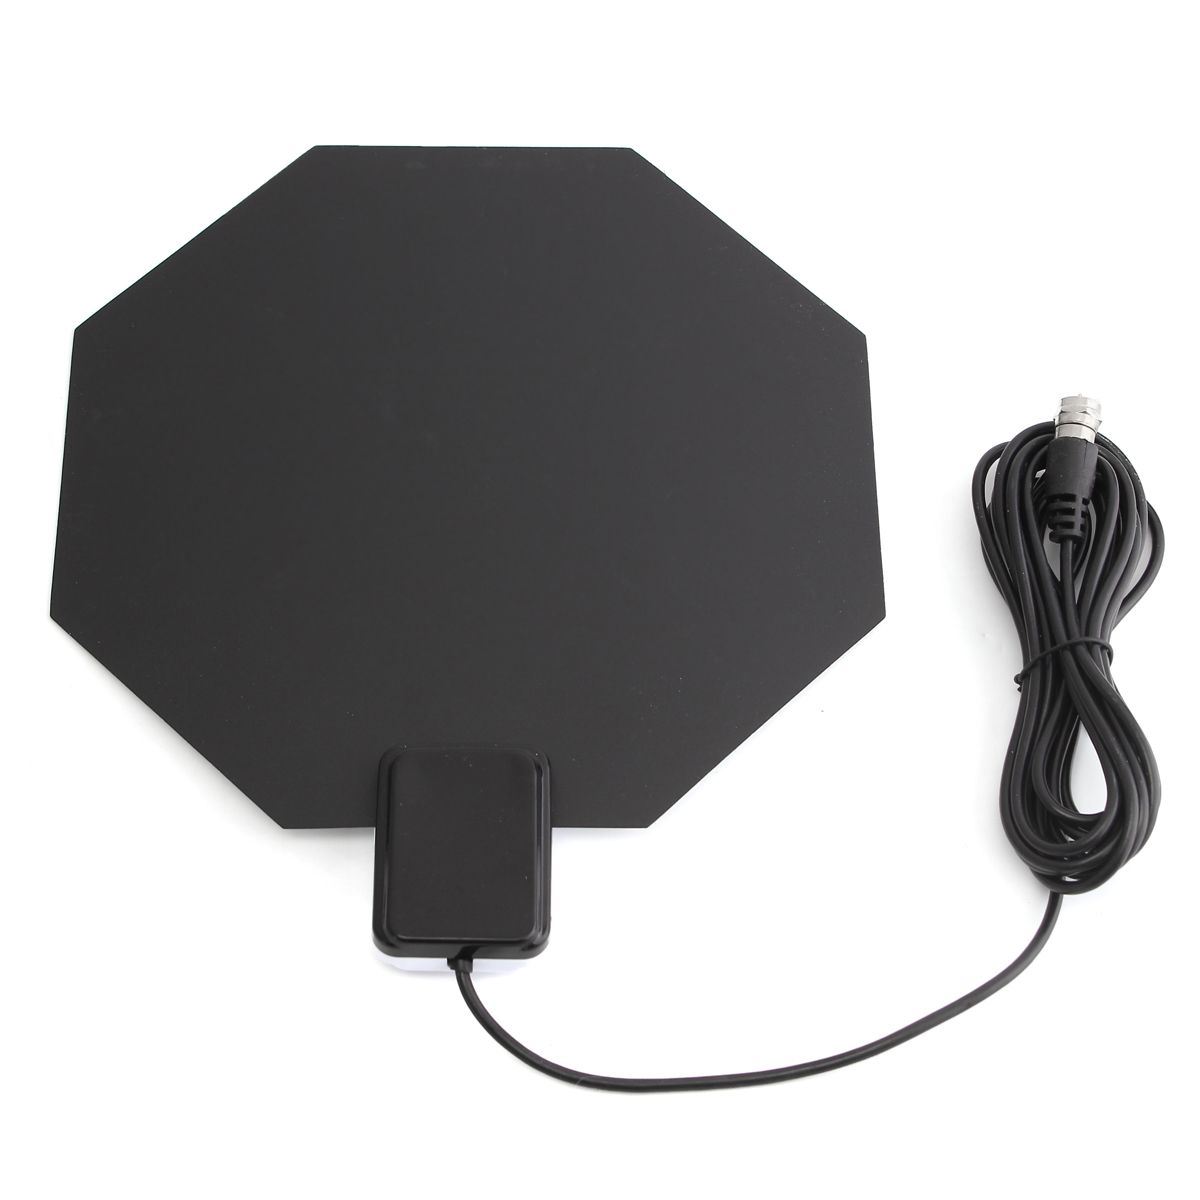 Long Range Amplified Flat Indoor HDTV Antenna VHF UHF